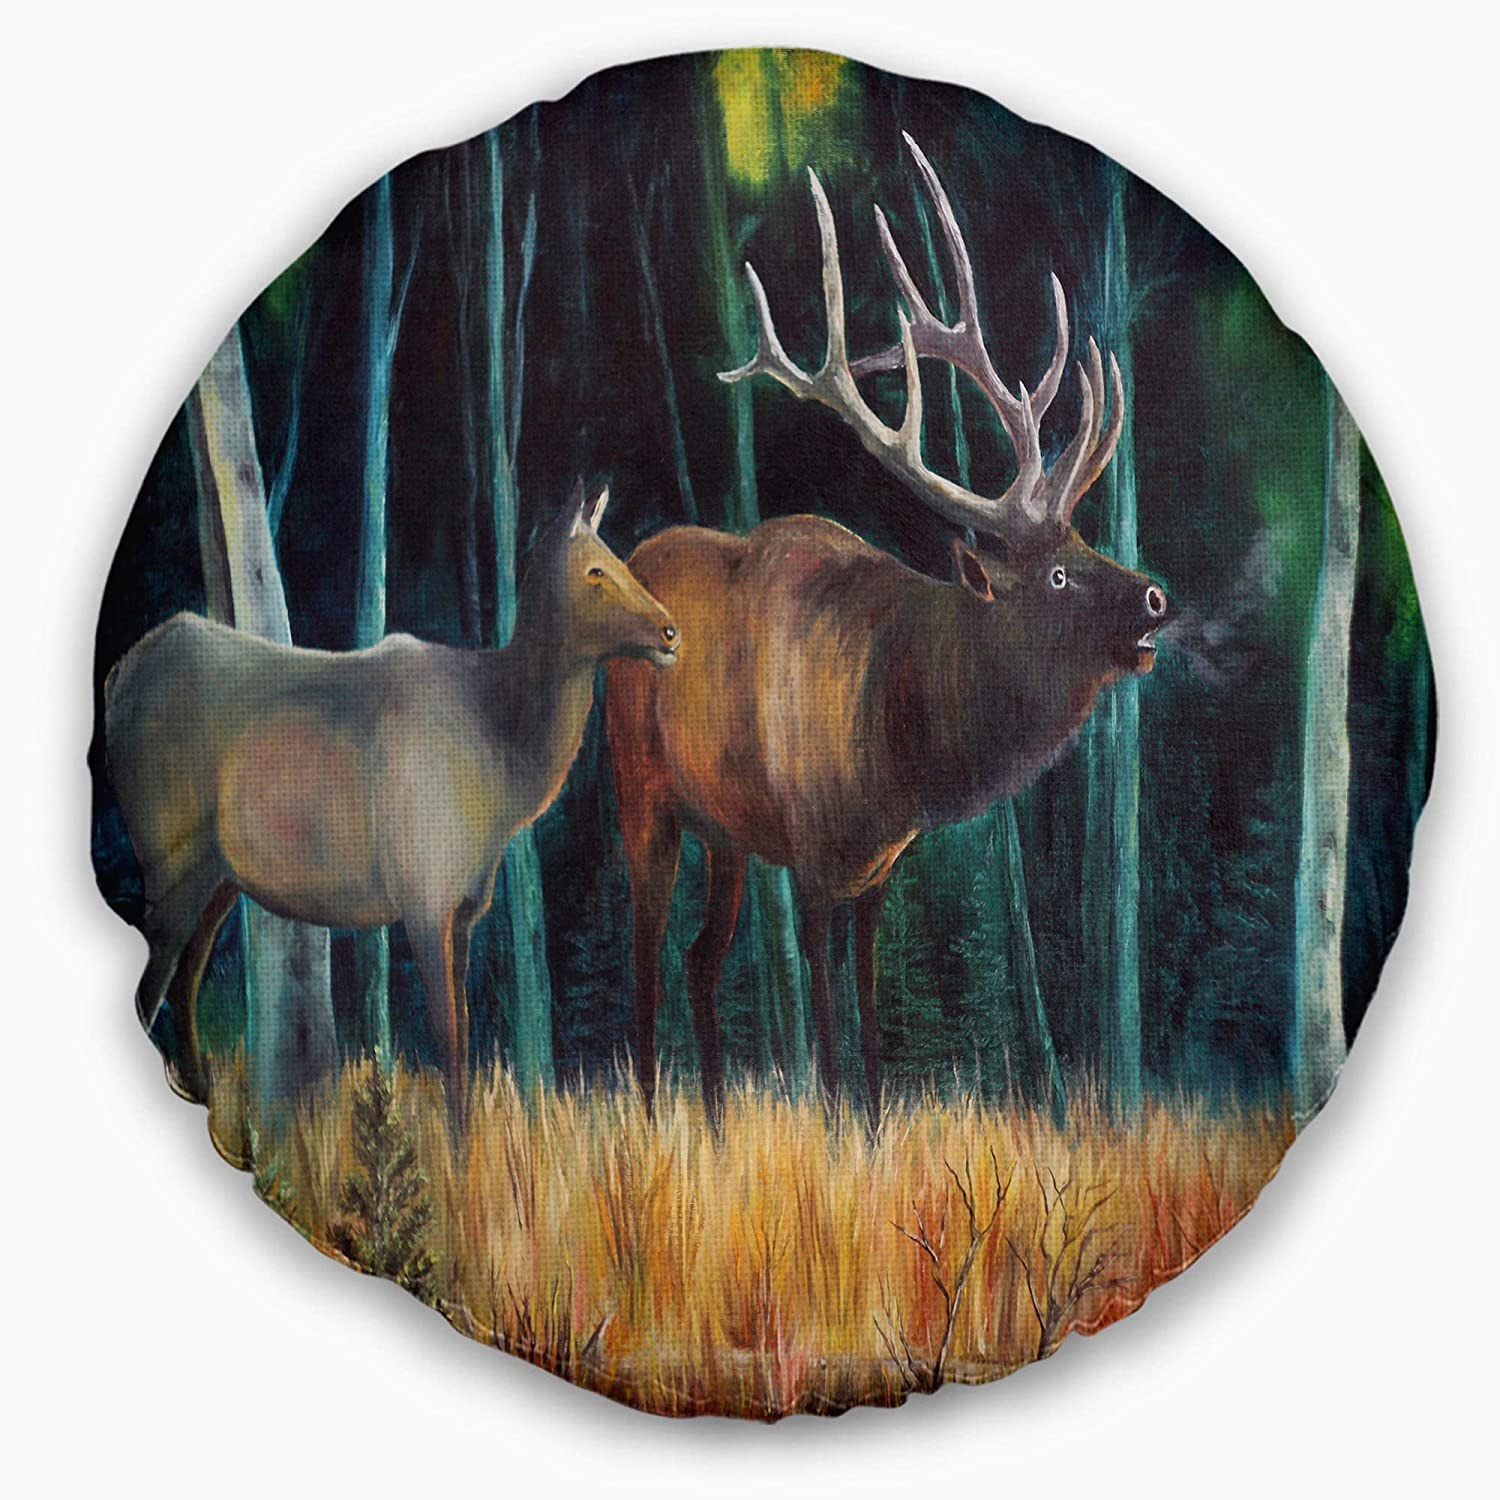 Insert Printed On Both Side Designart CU6178-16-16-C Wandering Deer in Forest Animal Round Cushion Cover for Living Room Sofa Throw Pillow 16